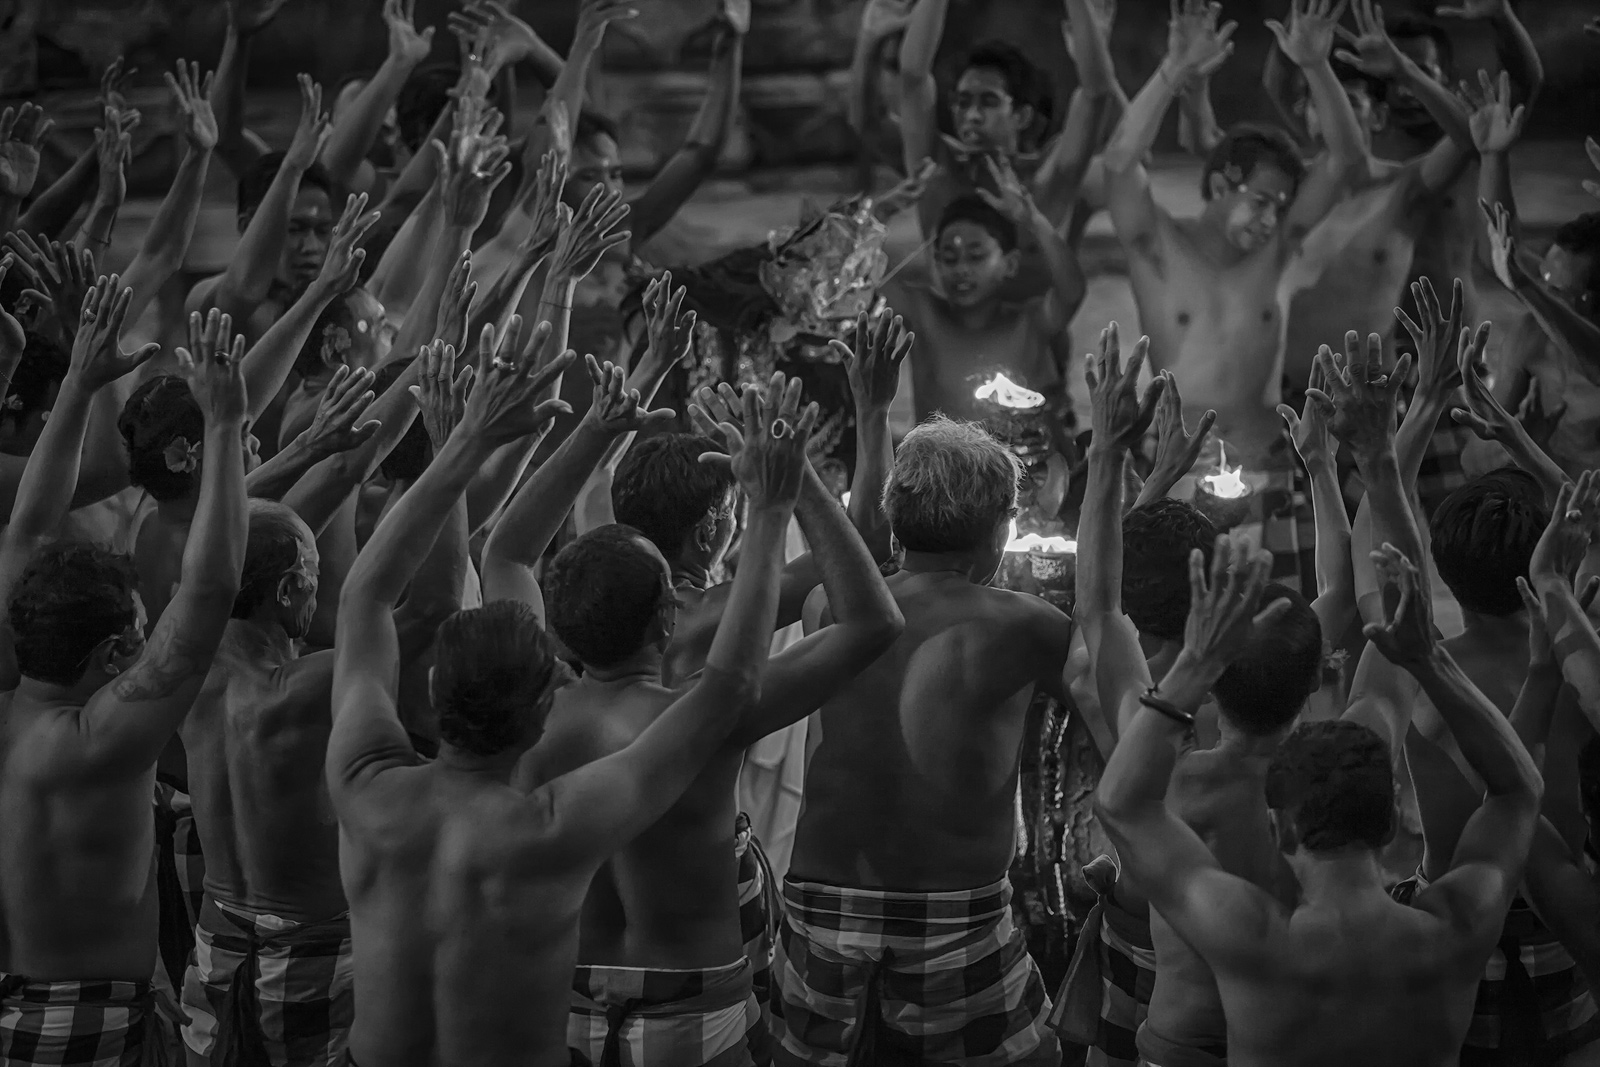 Bali's Kecak & Fire Dance getting underway after sunset.